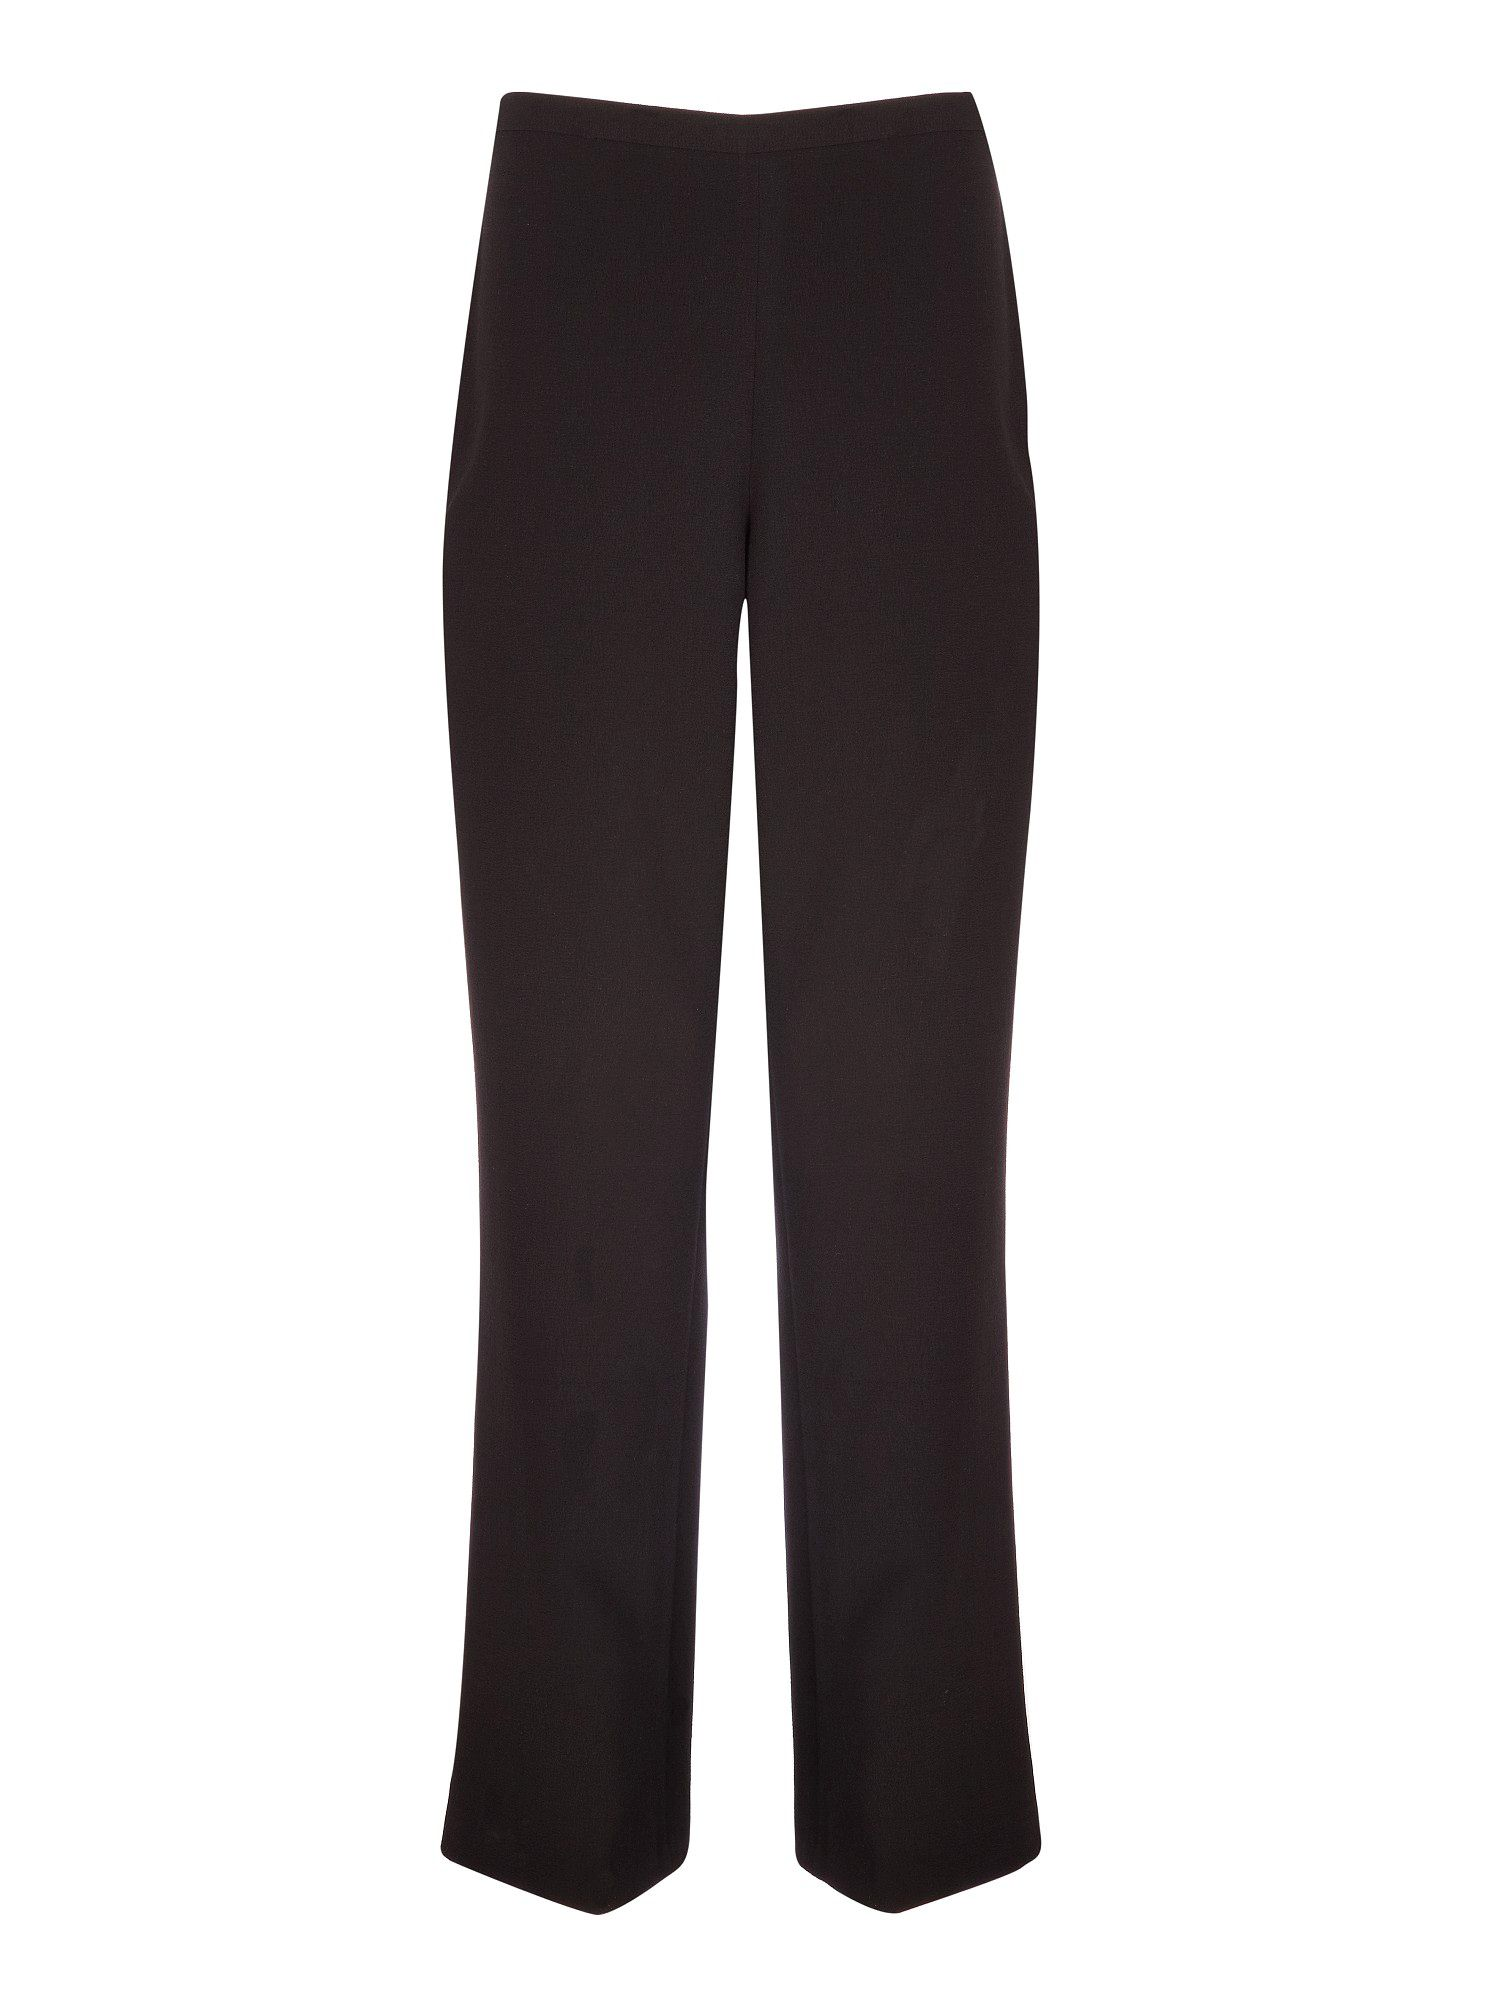 Black textured trousers